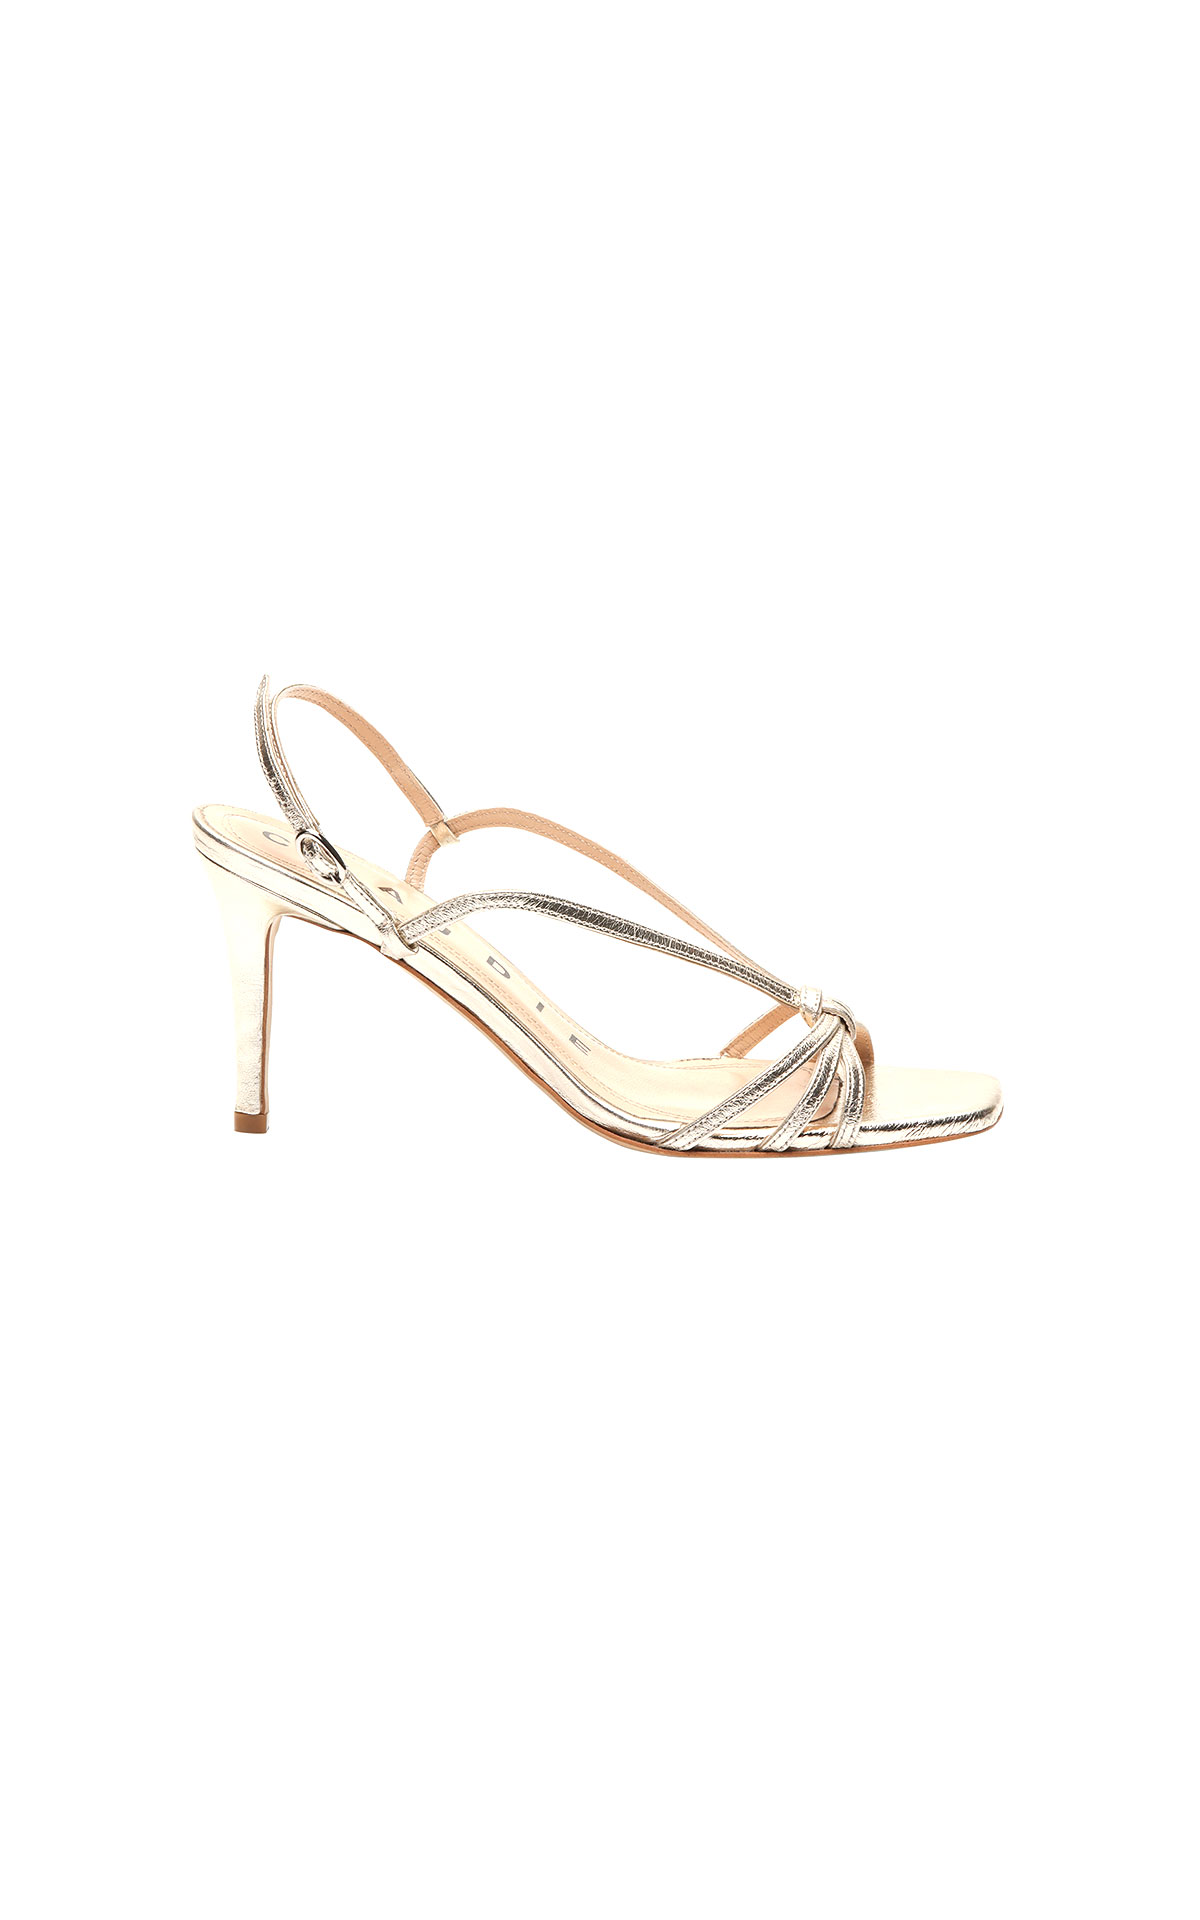 Claudie Pierlot gold sandal at The Bicester Village Shopping Collection